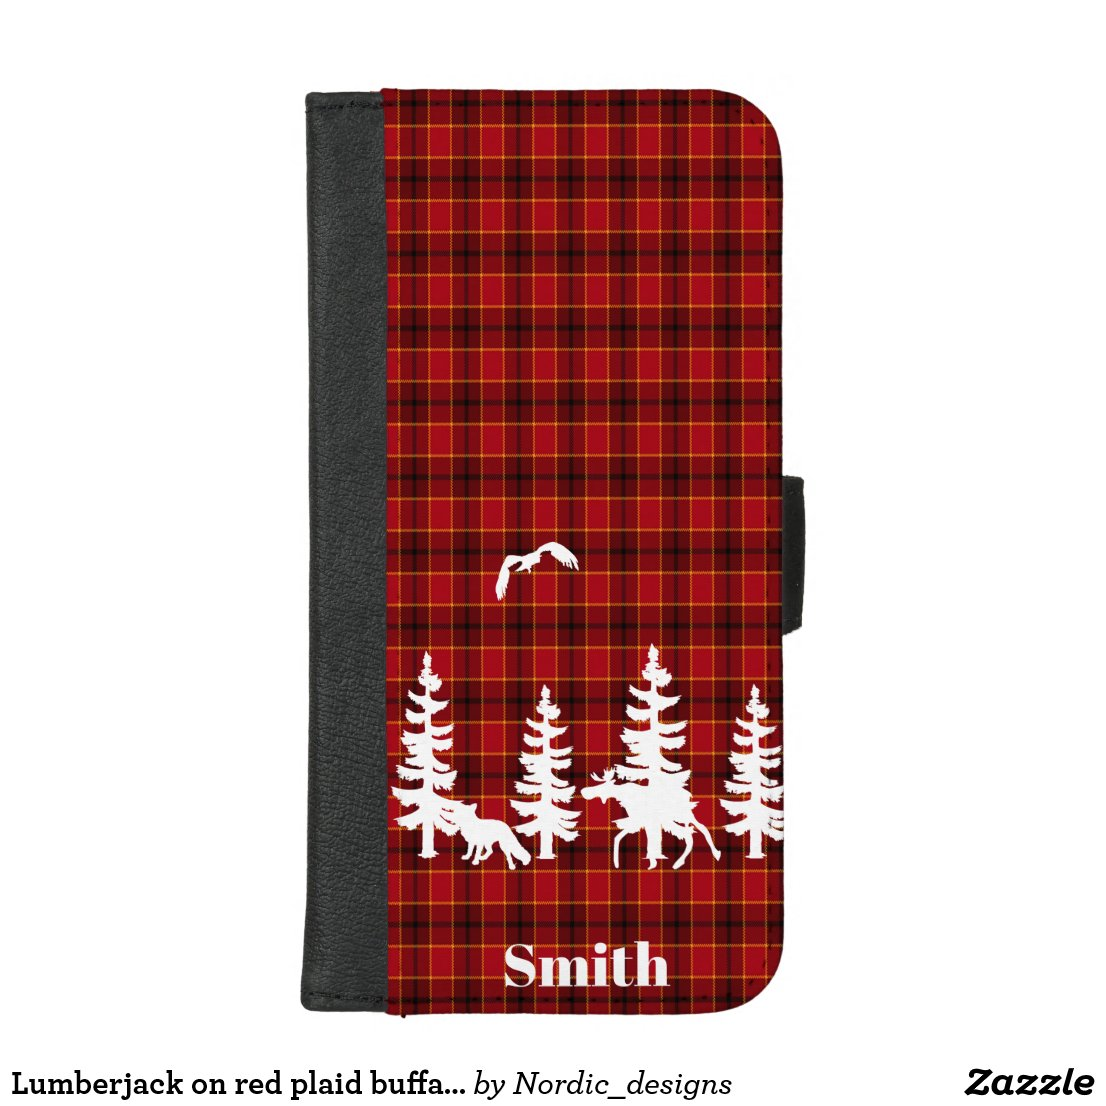 Lumberjack on red plaid buffalo check with forest iPhone 8/7 plus wallet case